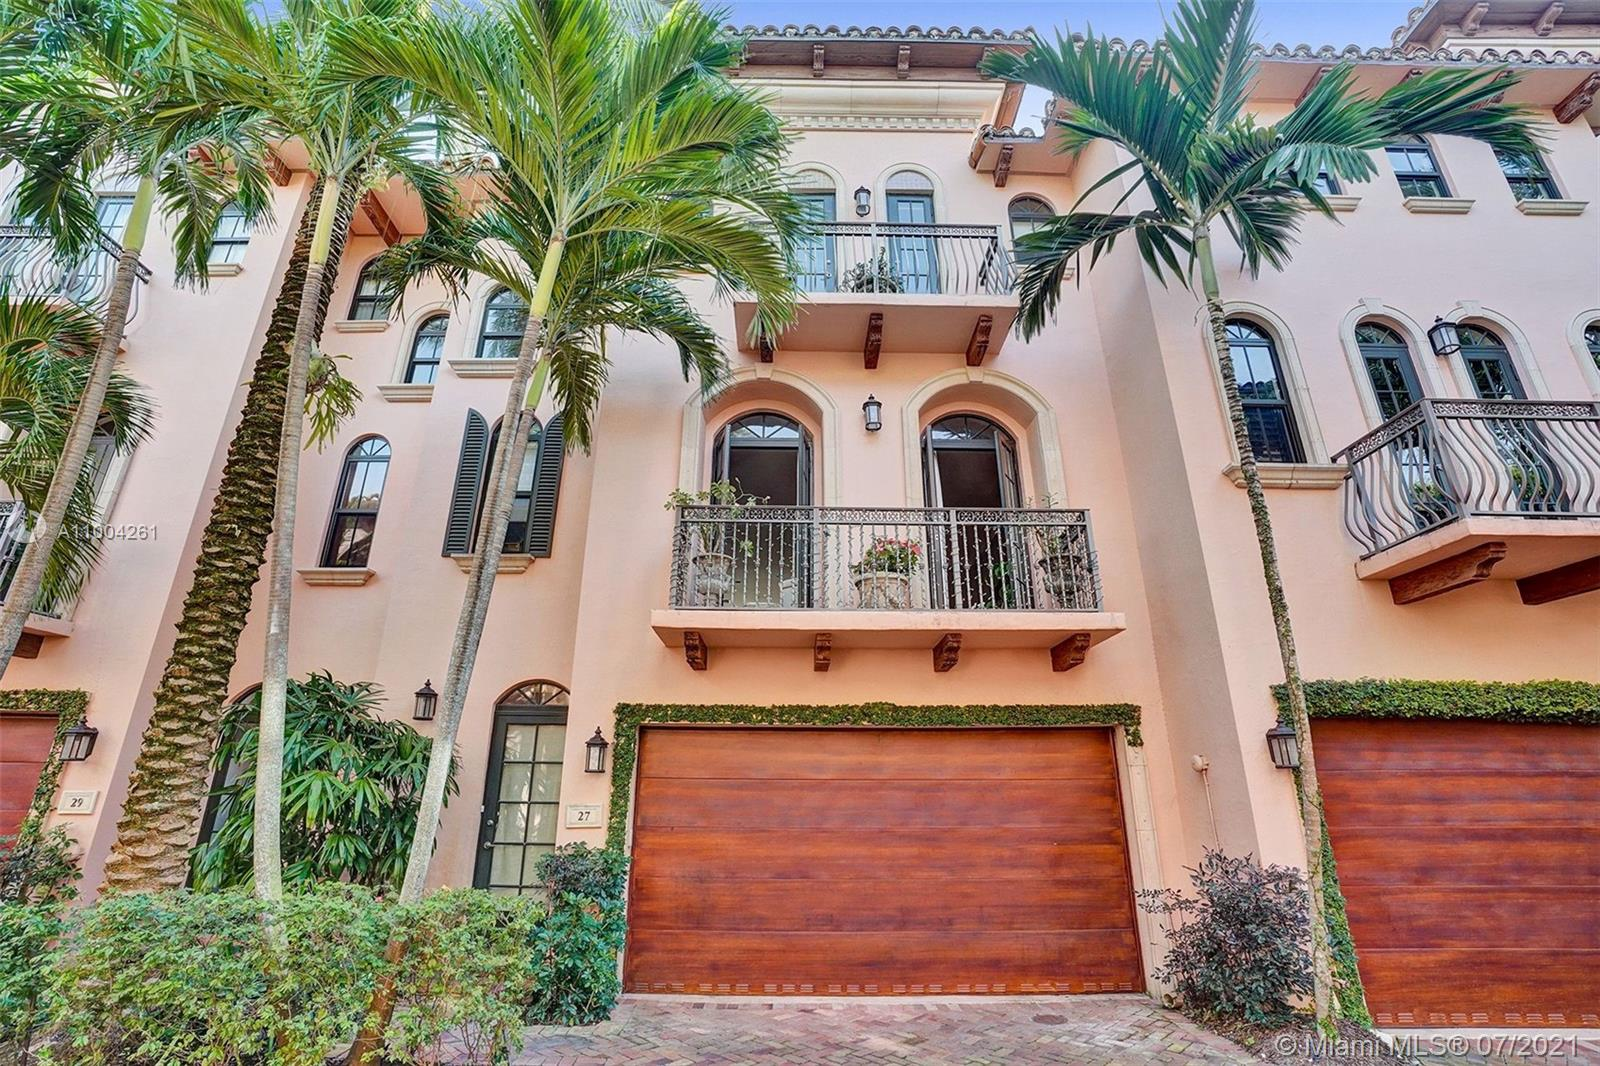 YOU HAVE TO SEE THIS IN PERSON!!Stunning newer construction Mediterranean townhouse just steps away from sought after Las Olas of East Fort Lauderdale!! This 3Bed/3.5Bath/2 car garage home is immaculate with high ceilings/offering 2600 Sq.Ft. under air perfect for entertaining. Two of the bedrooms and baths are on the 1st floor, take the elevator to the second floor and you will be impressed by the open floor plan with natural light filling a gorgeous open kitchen with a huge island and plenty of cabinetry. The 3rd floor is all for the master bedroom with impressive closet space and a spacious master bath. All impacts windows/doors, SS appliances/Gas Stove , 3 balconies, and high end finishes throughout. Walk to Parks, the river, the beach, and all kinds of dining and shopping!! LOW HOA!